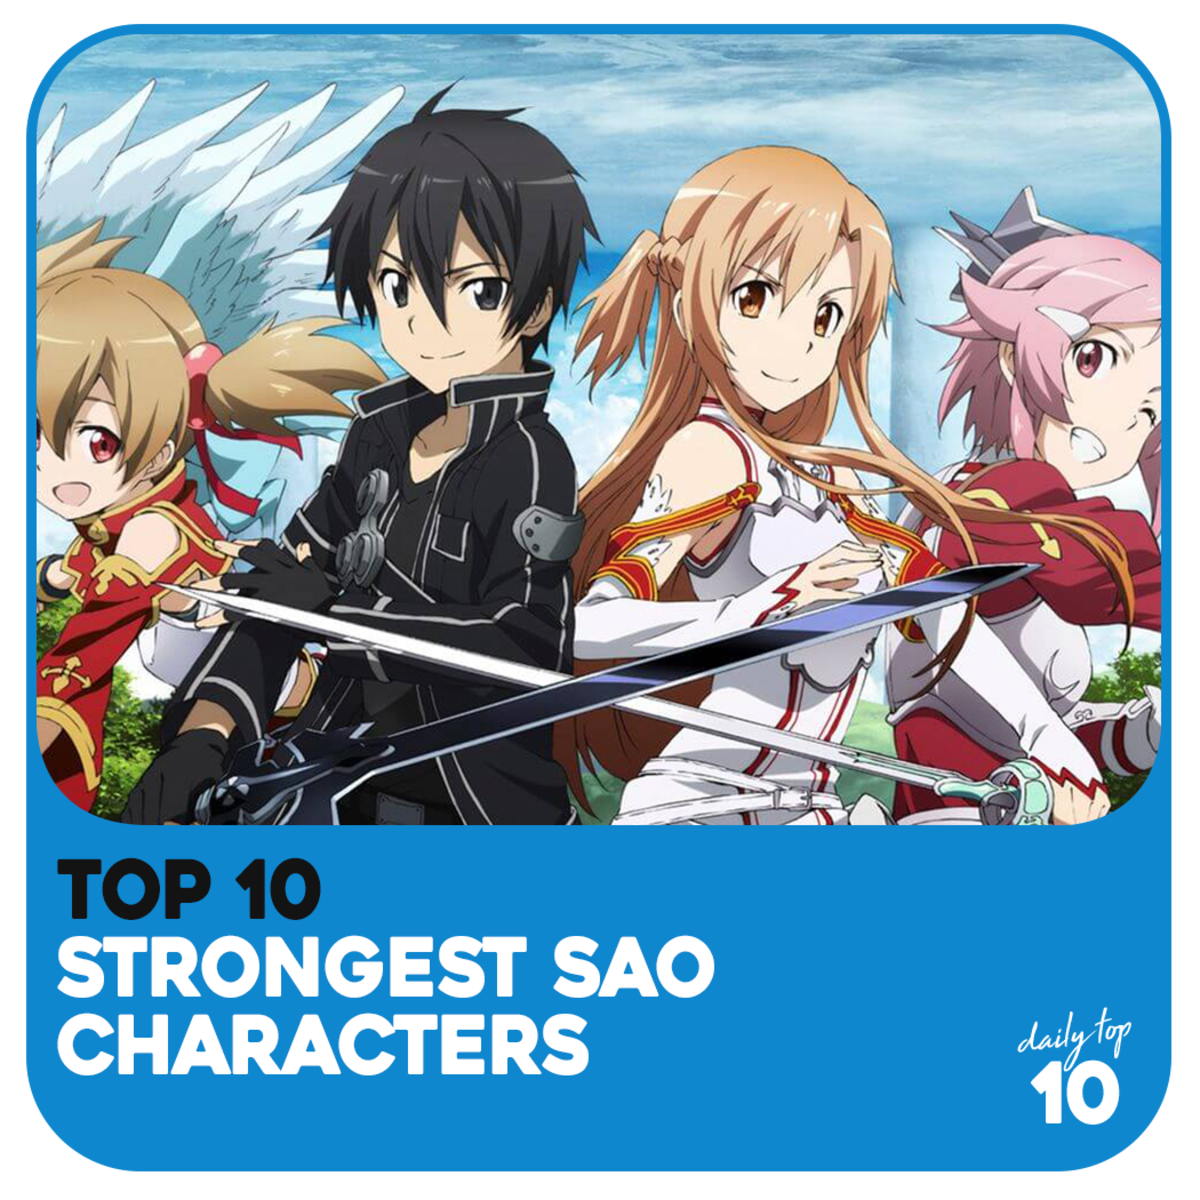 Top 10 Strongest Sword Art Online Characters